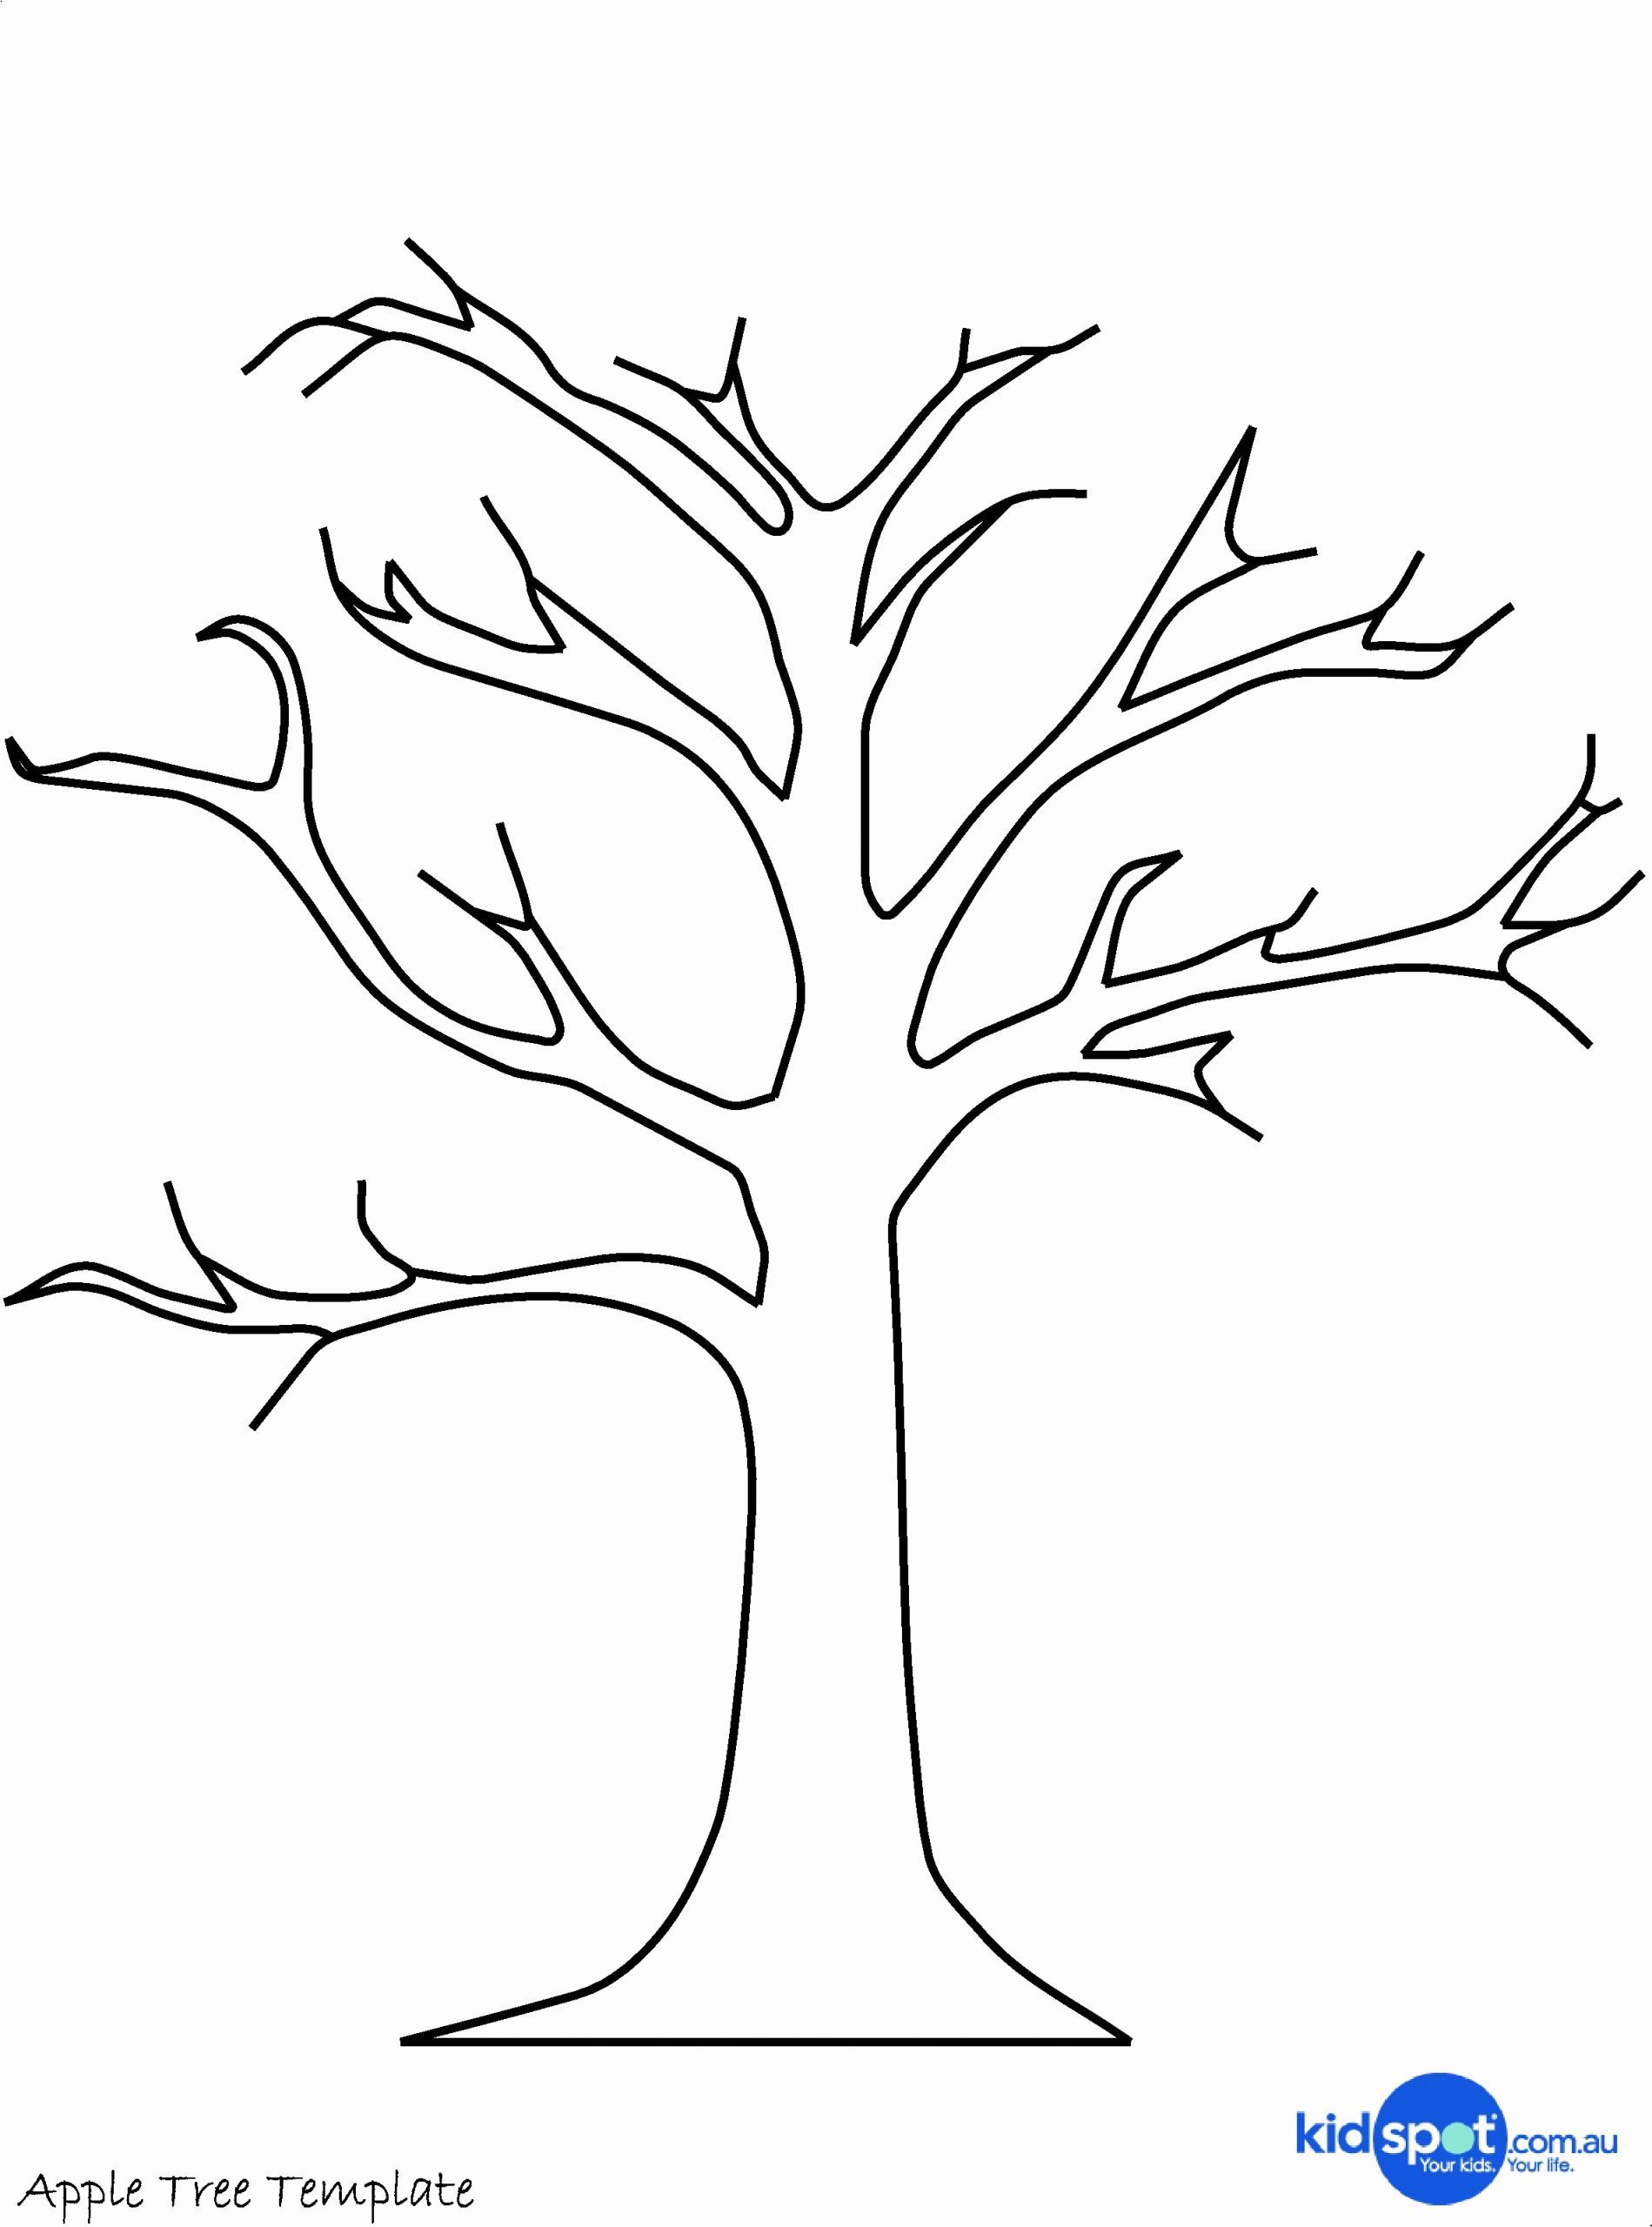 T For Tree Coloring Page Fresh Pin By My Little Schoolhouse On